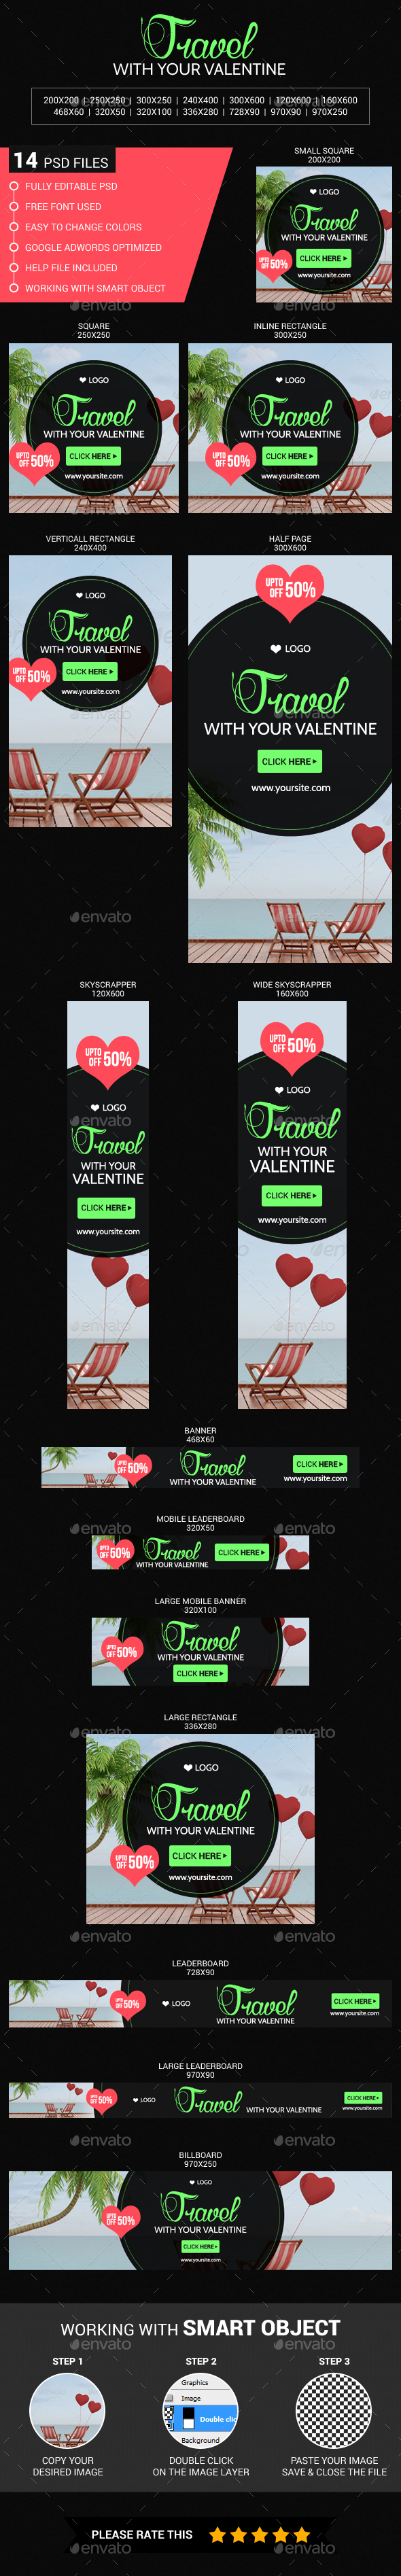 Travel with your valentine - Banners & Ads Web Elements